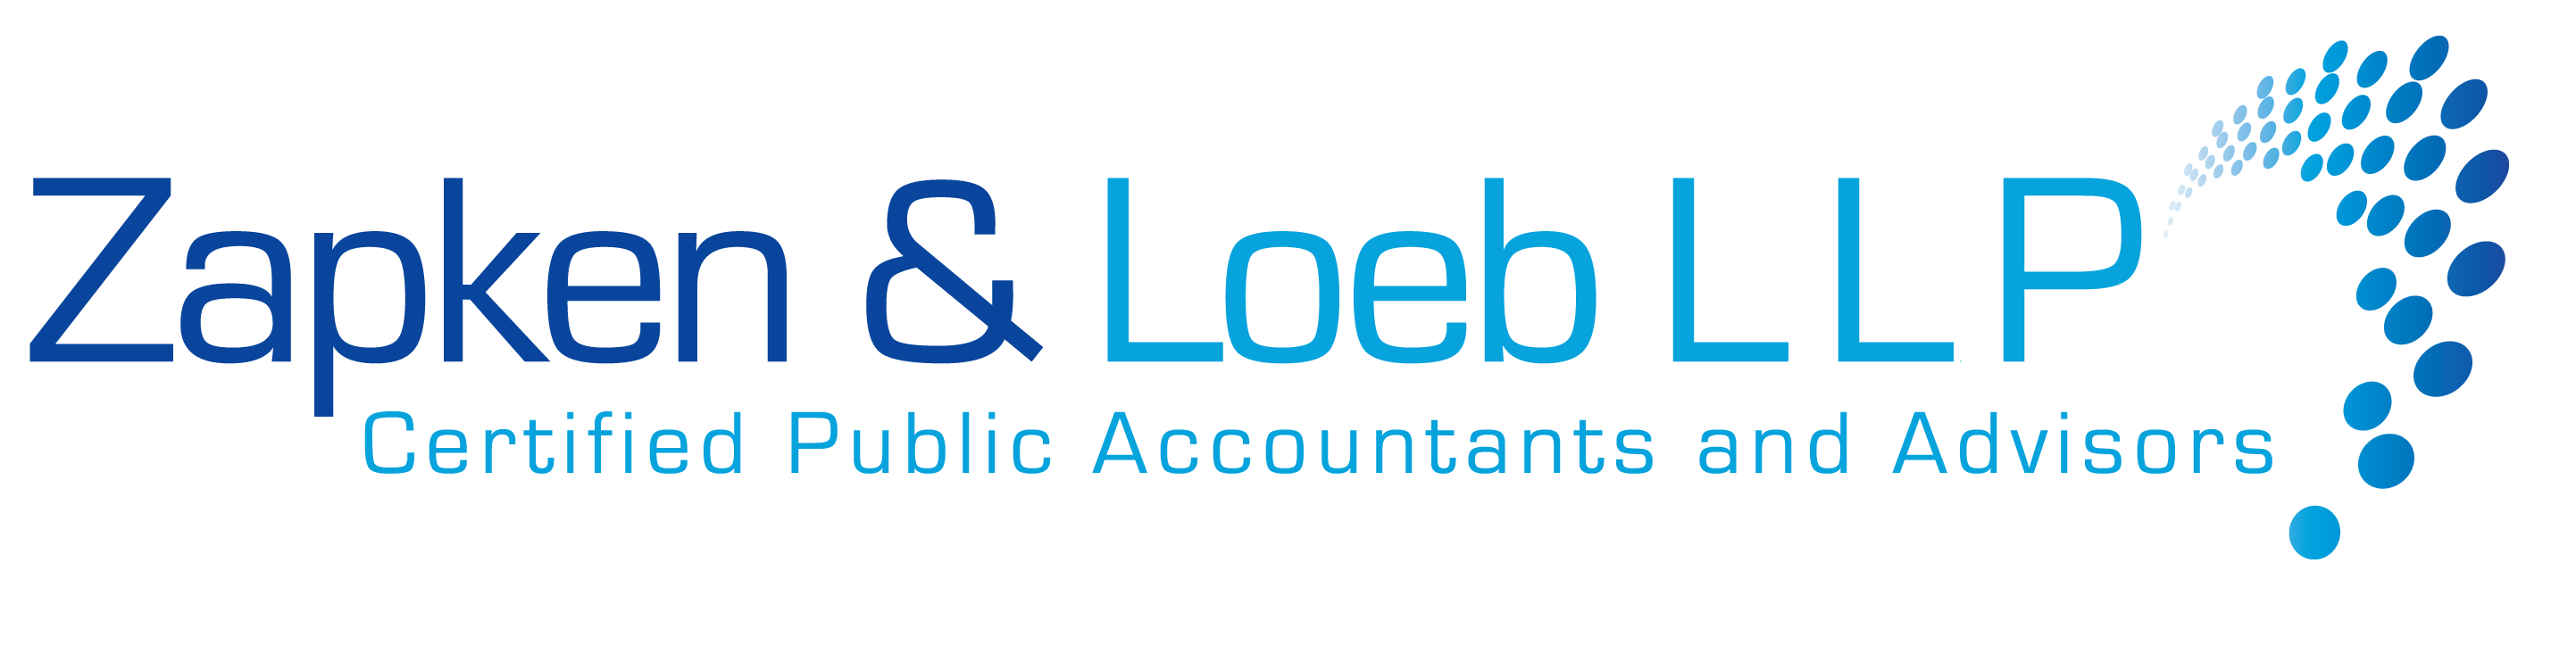 Woodbury, NY Accounting Firm | Dentists Page | Zapken & Loeb L.L.P.